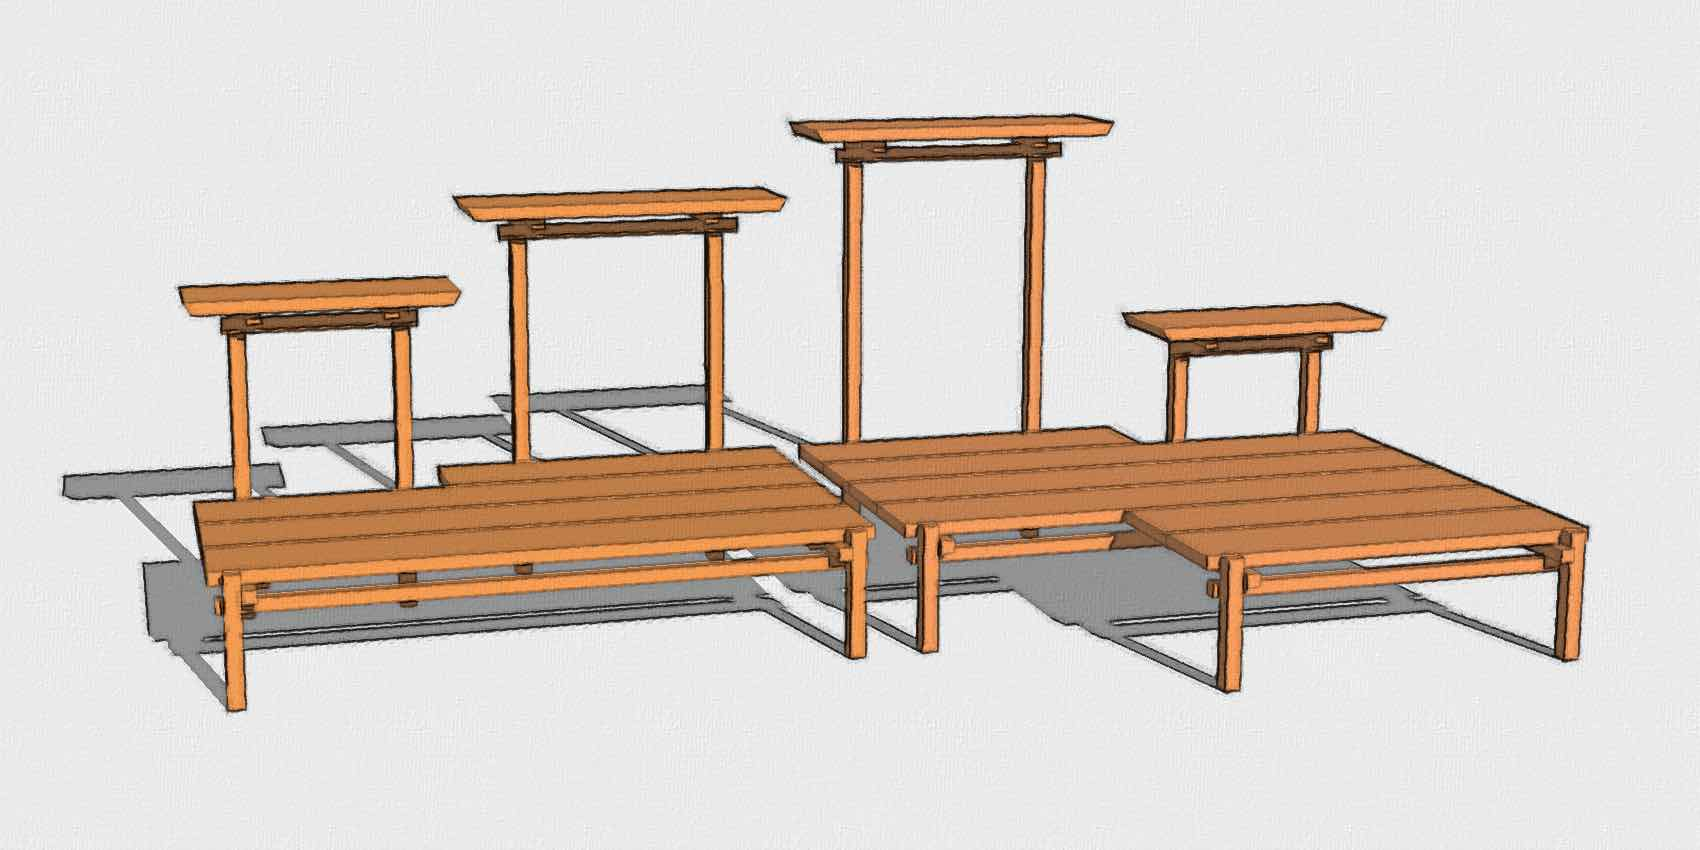 Omni Pagoda Bonsai Plant Stands: 1527 standard and 2715 extended